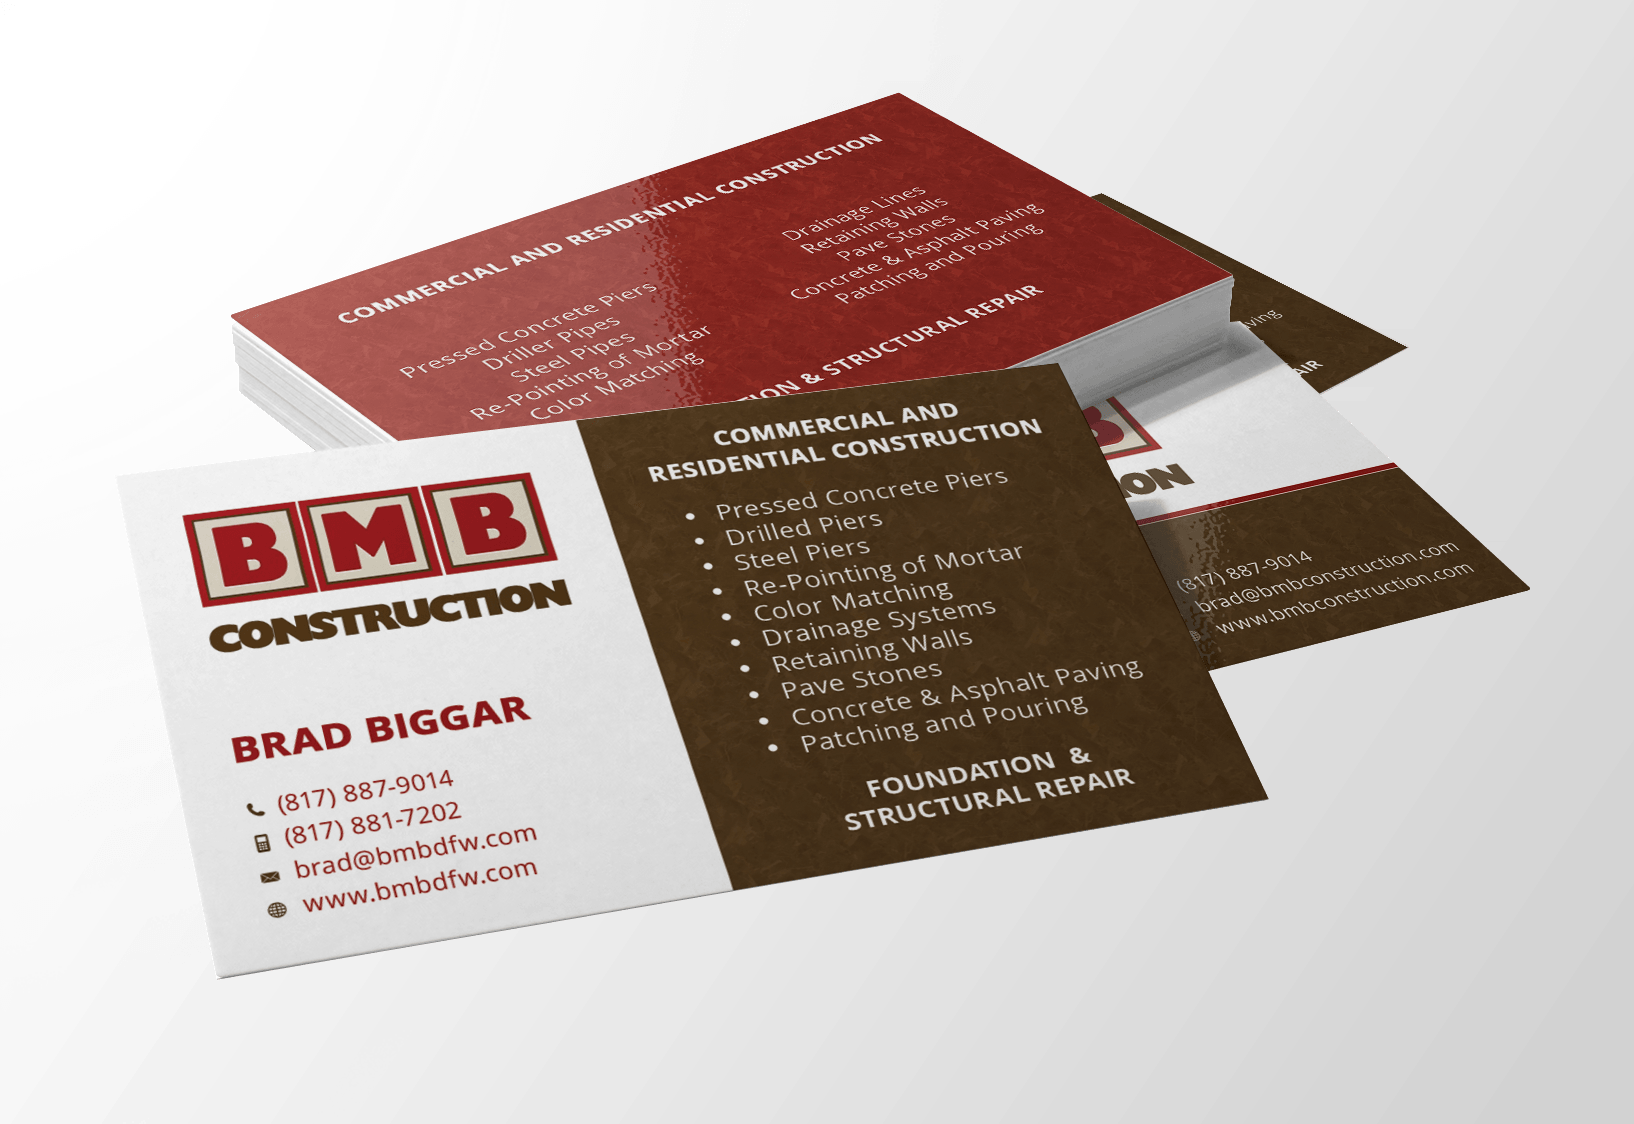 Business Card Design  Website Design Flower Mound Logo. Lost Dog Sign. Avery 8366 Labels Template. Movie Poster Ideas. Michigan State University Graduation Rate. Dresses To Wear For Graduation. Career Change Resume Template. Preschool Graduation Picture Frame. Kanye West Graduation Bear